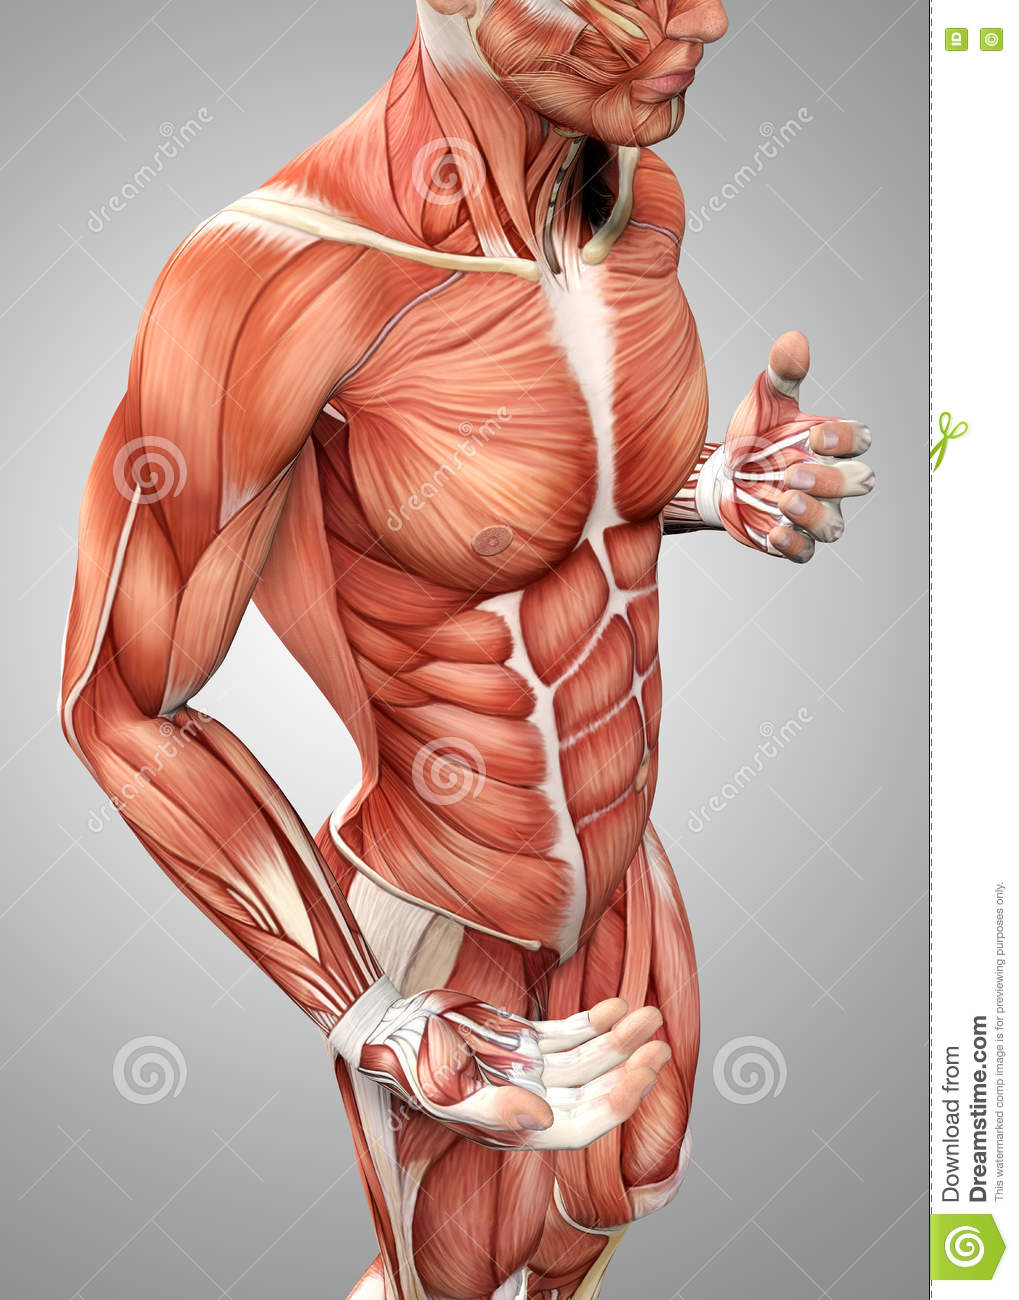 3d Male Anatomy Showing Torso Stock Illustration - Illustration of ...